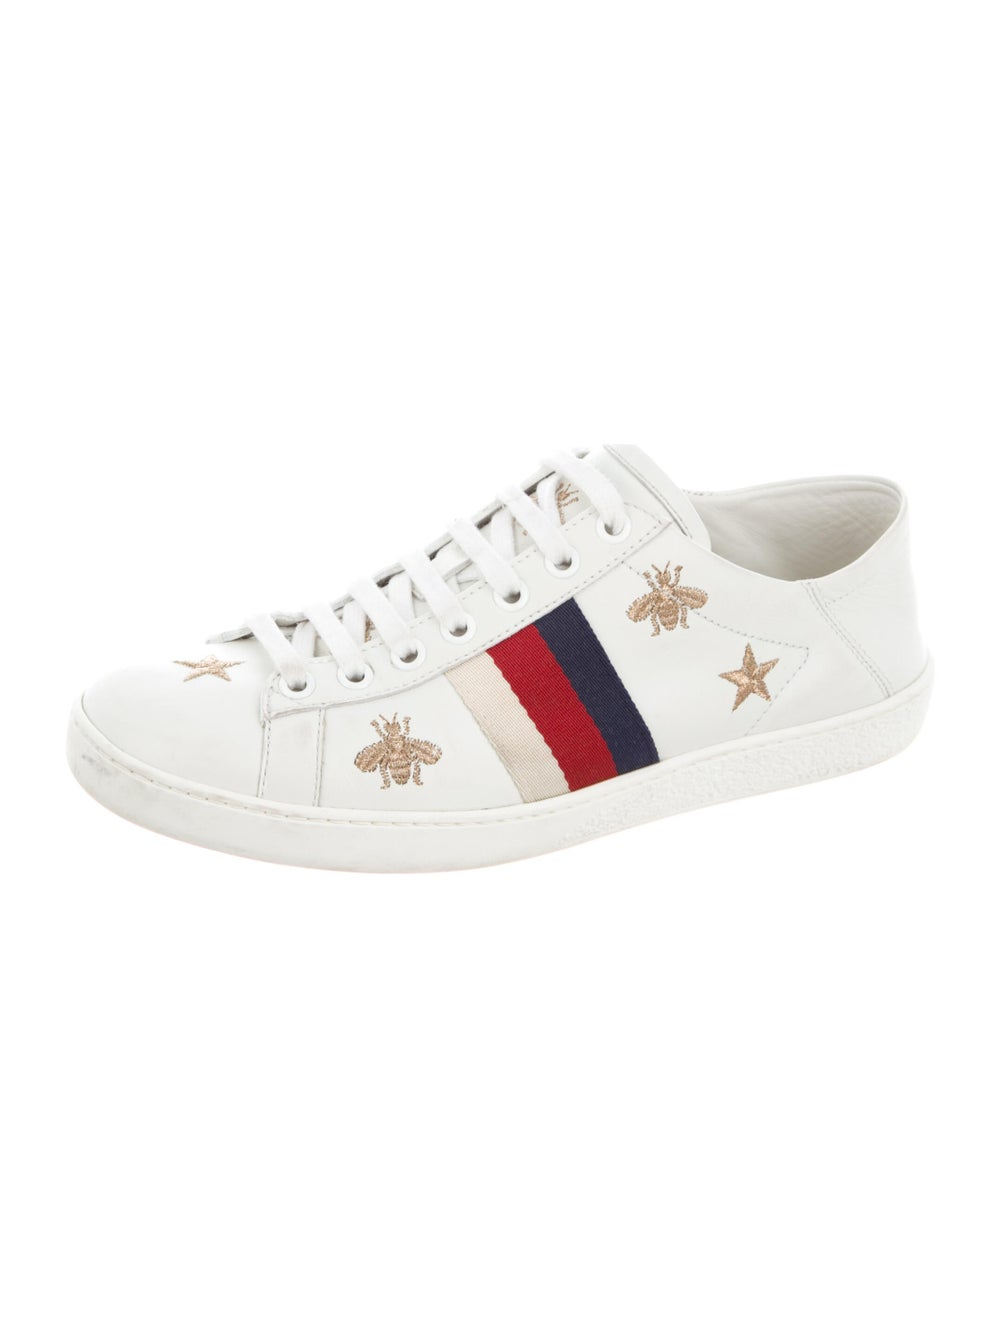 Gucci Ace Sneakers White - image 2